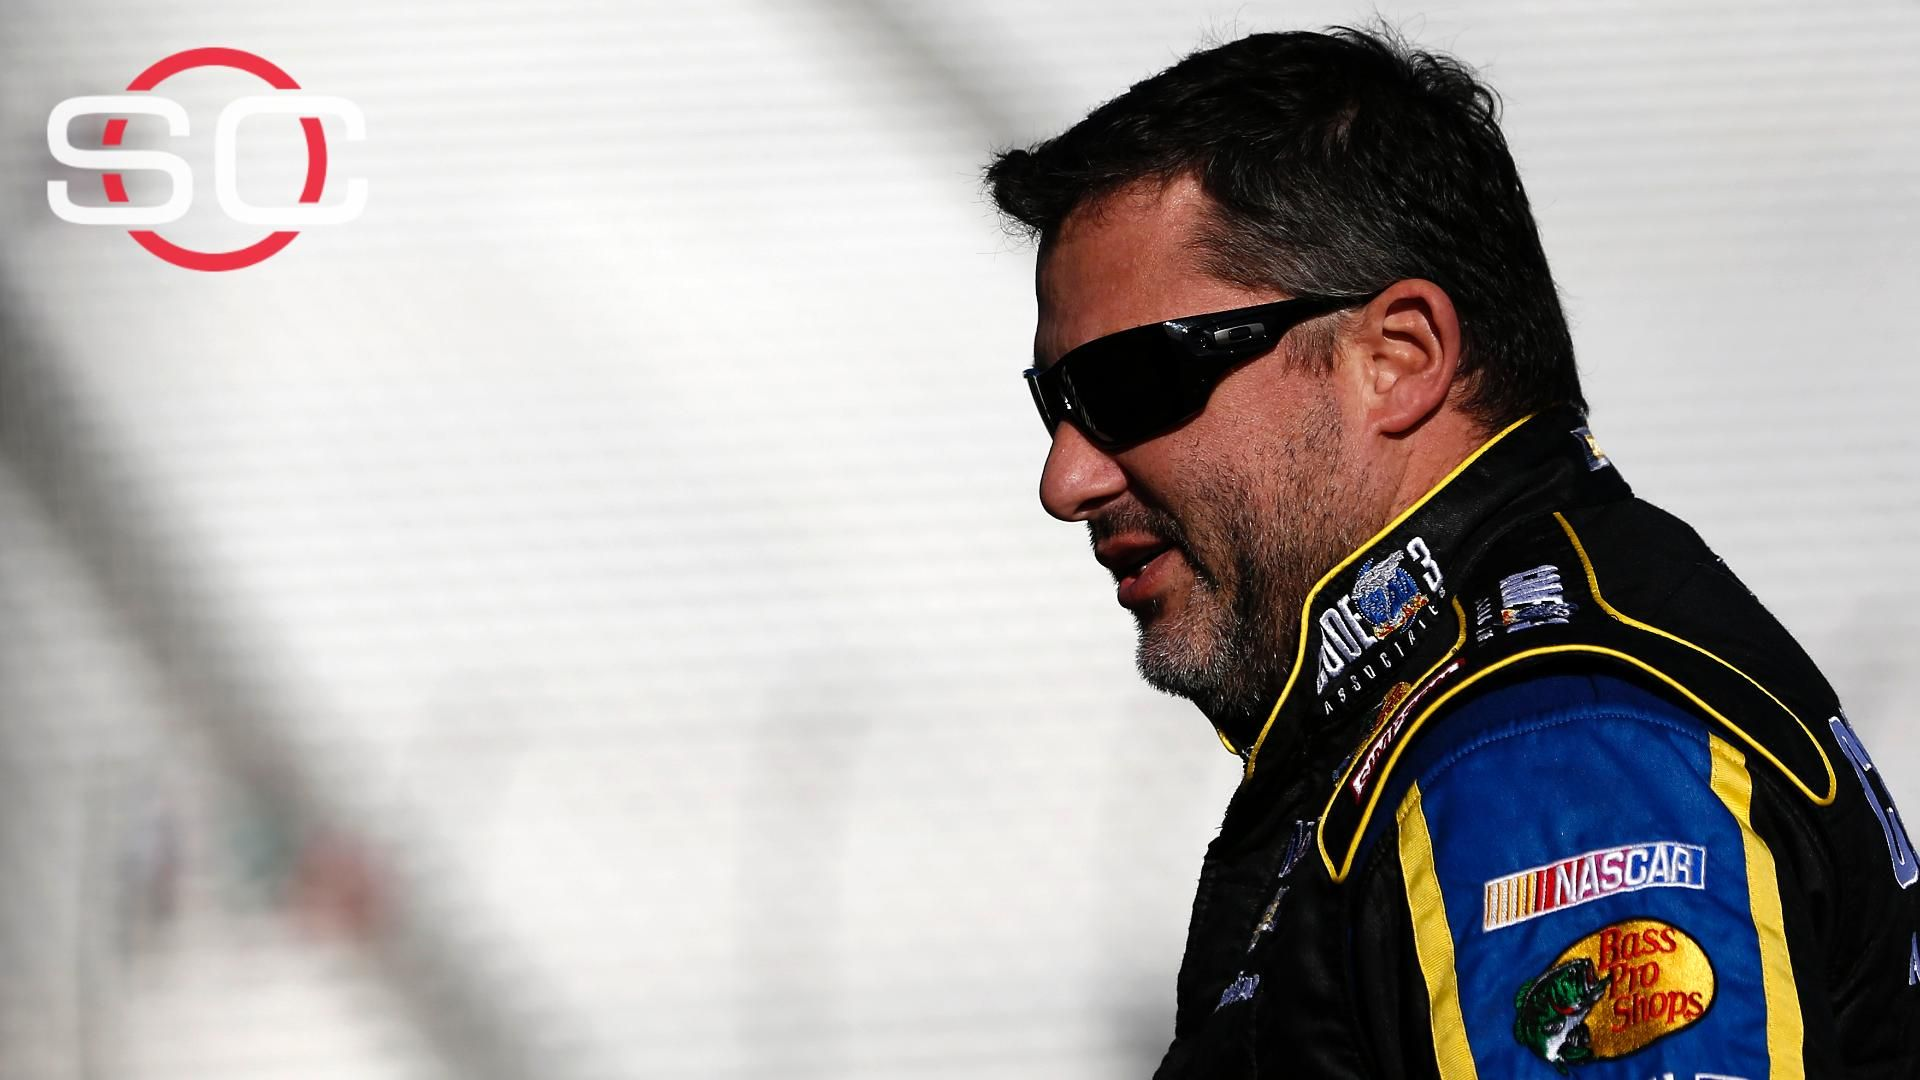 What is Tony Stewart's legacy?